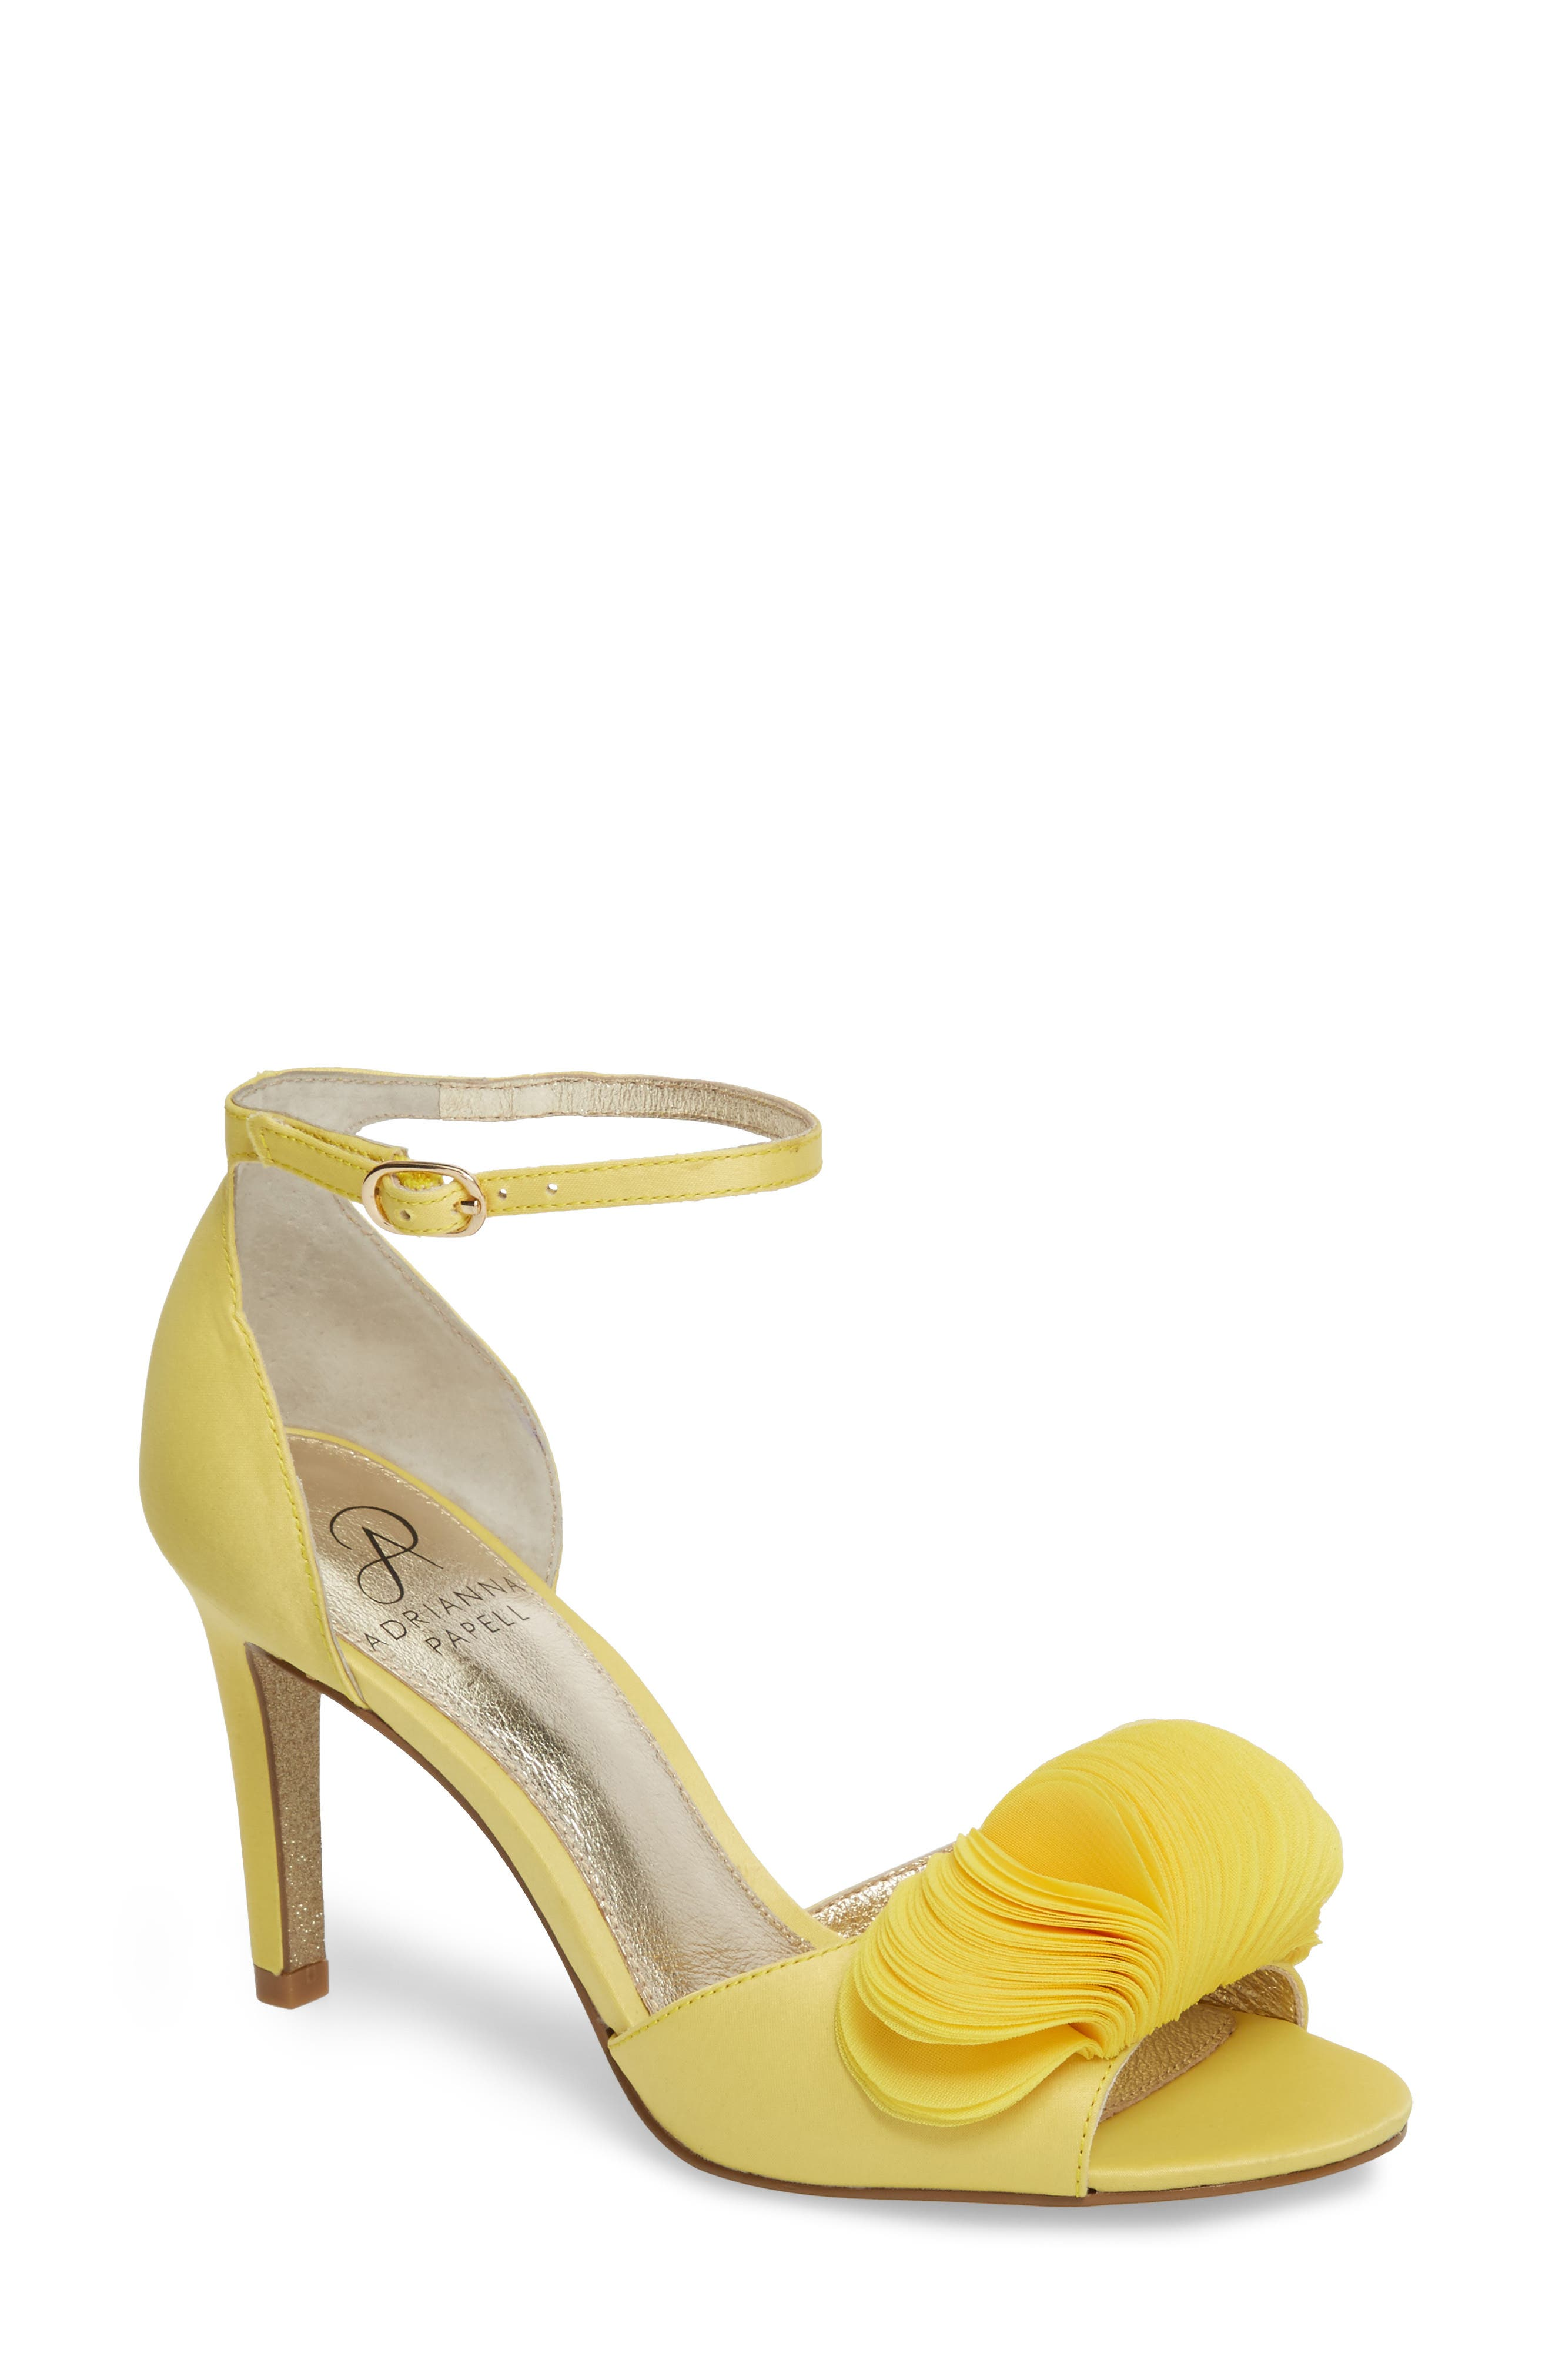 Adrianna Papell Gracie Ankle Strap Sandal (Women)